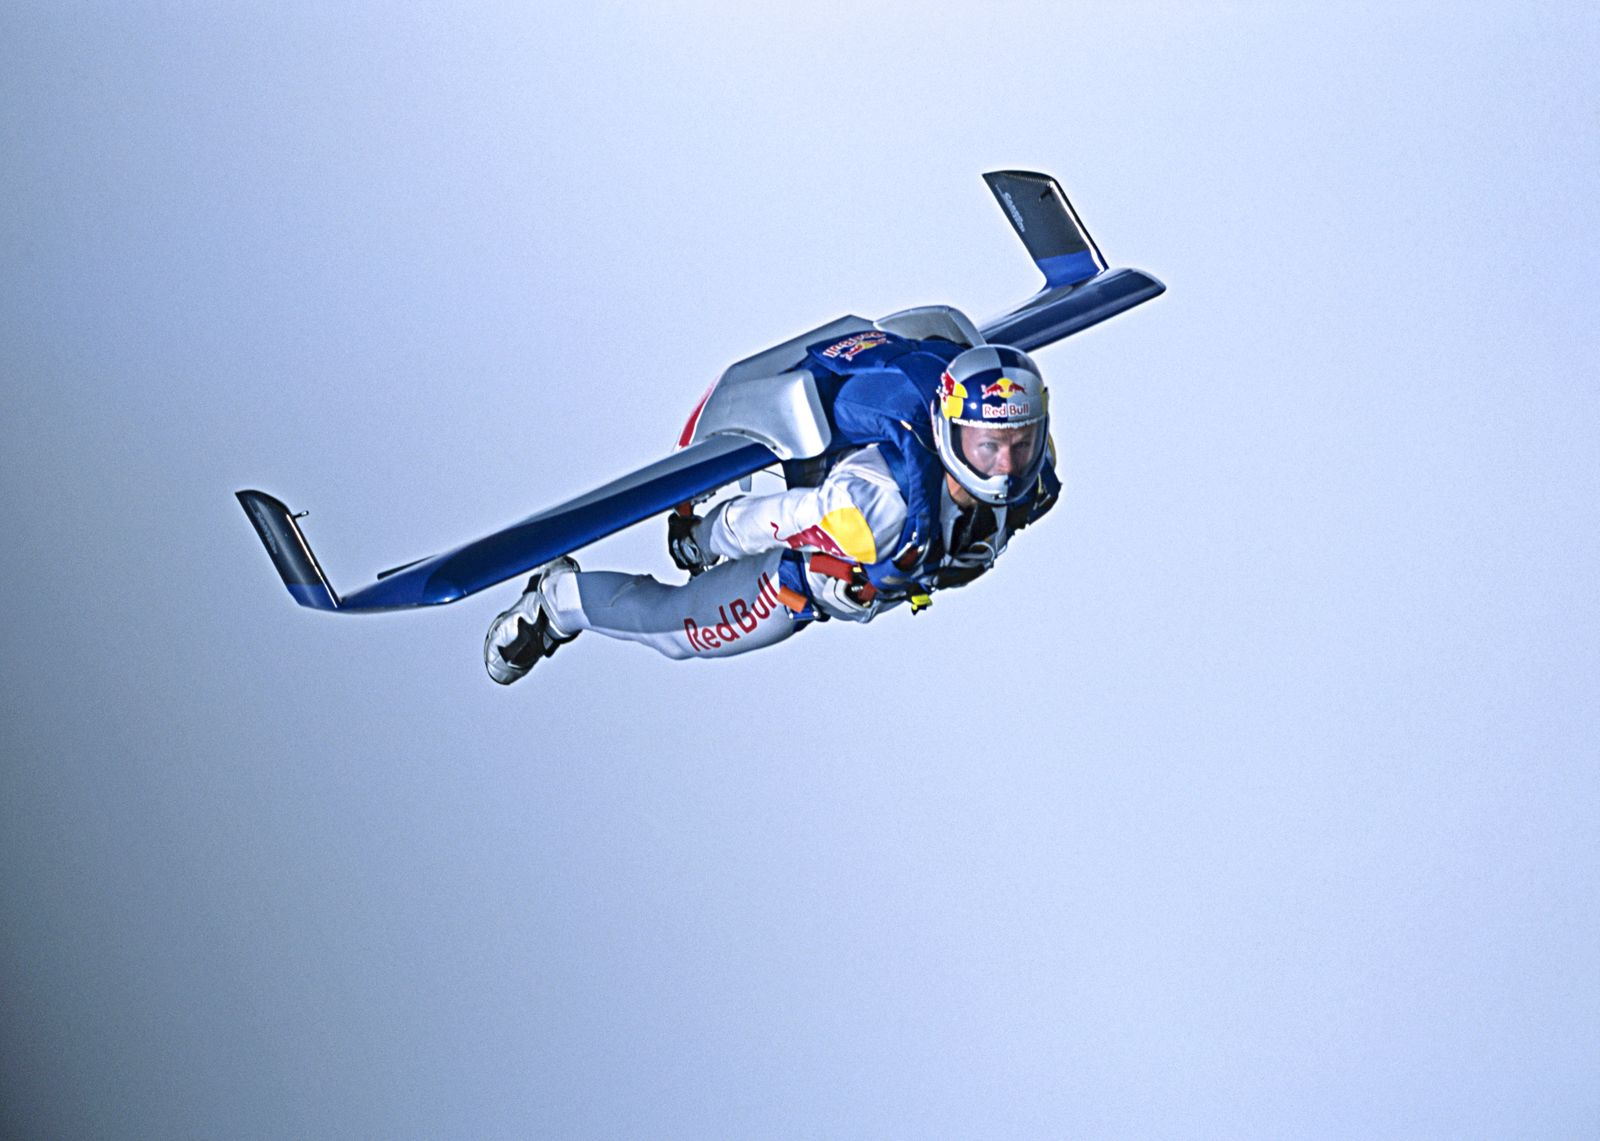 SKYDIVER FELIX BAUMGARTNER IS SEEN DURING PRACTICE ATTEMPT TO FREEFALLCROSS ENGLISH CHANNEL.